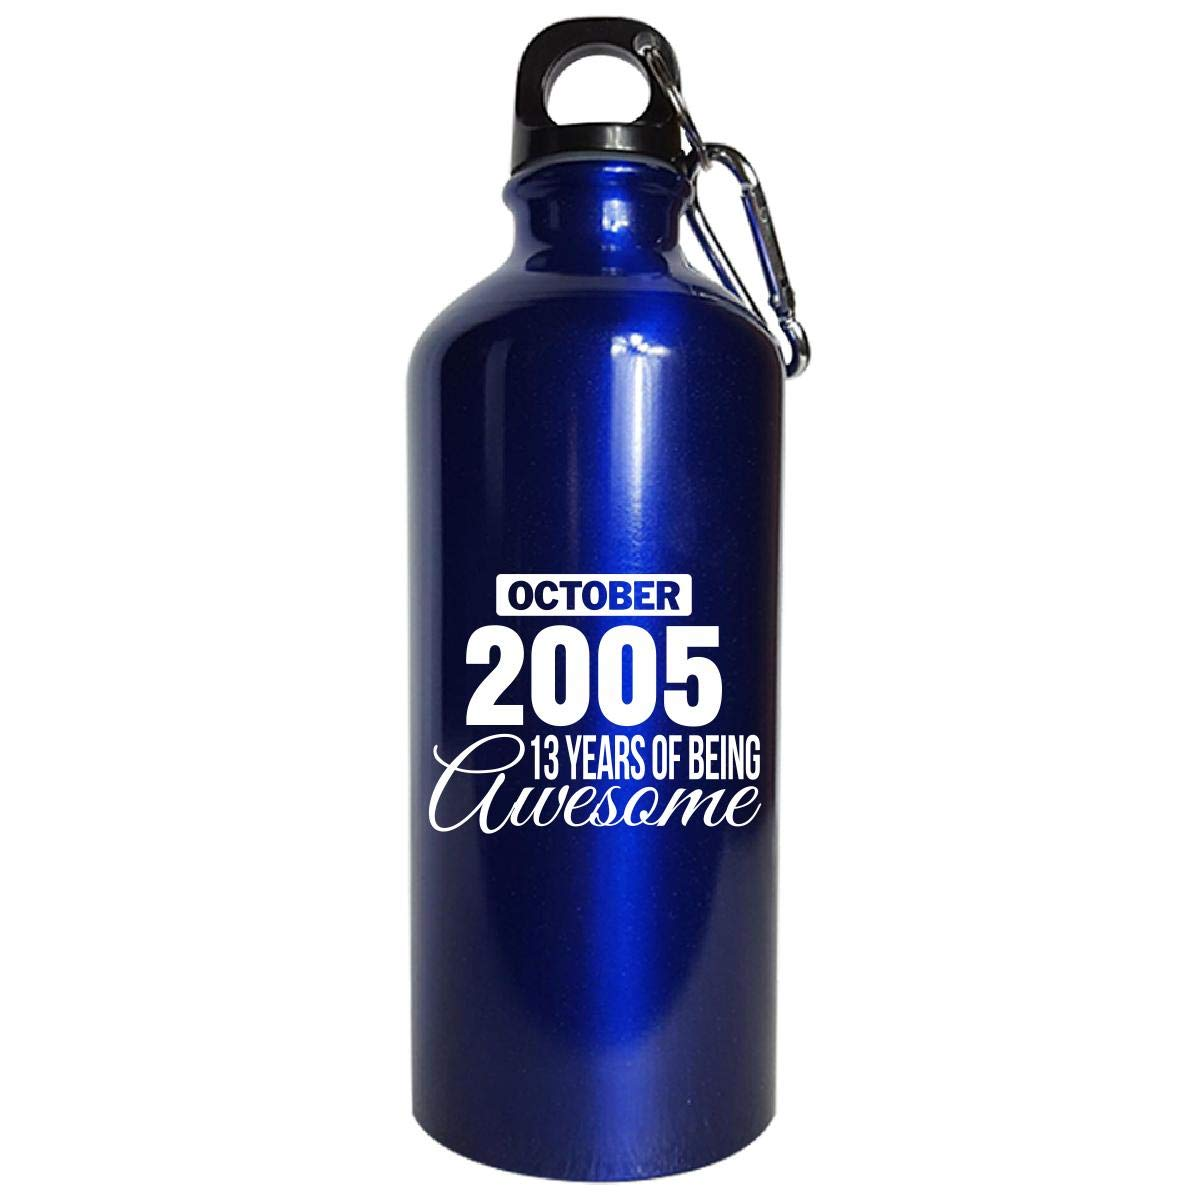 October 2005 13 Years Of Being Awesome Funny Birthday Gift - Water Bottle Metallic Blue by Shirt Luv (Image #1)